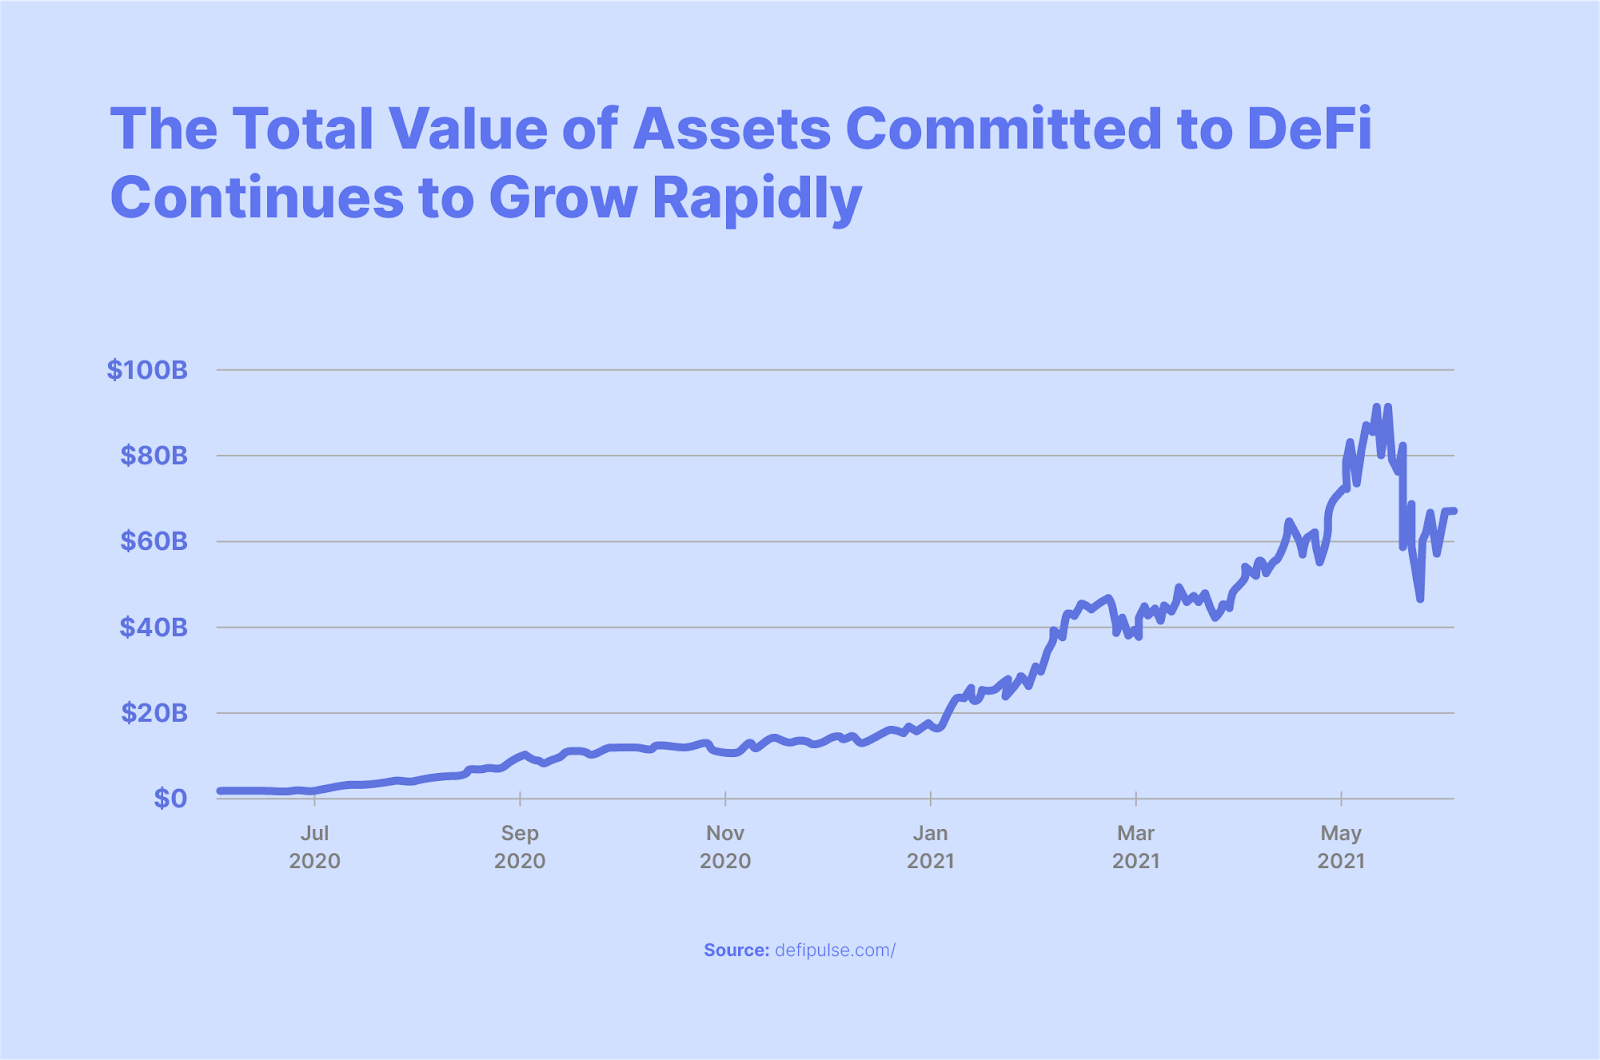 value of assets committed to defi